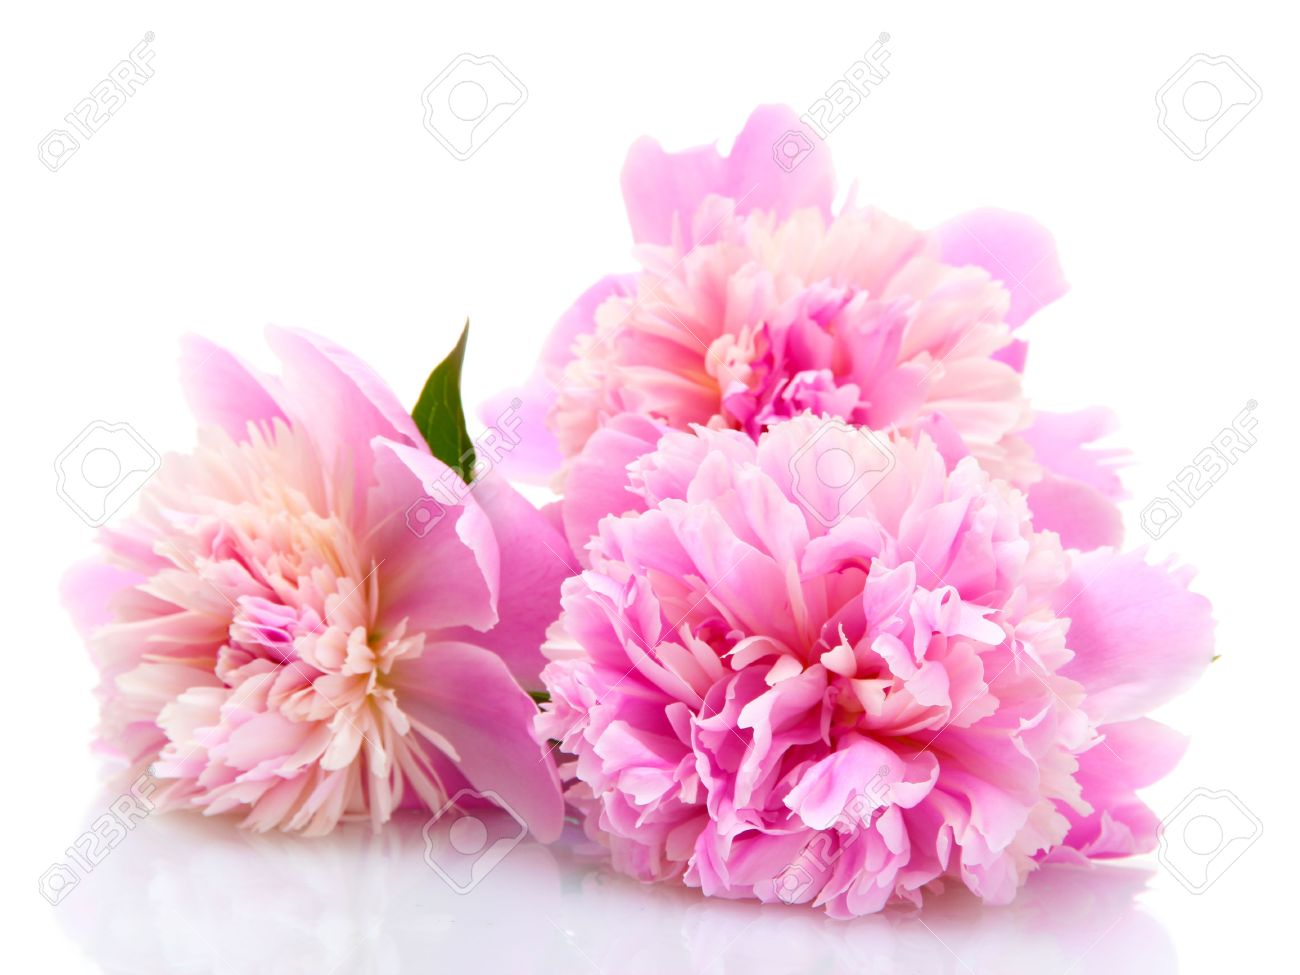 pink peonies flowers isolated on white stock photo, picture and